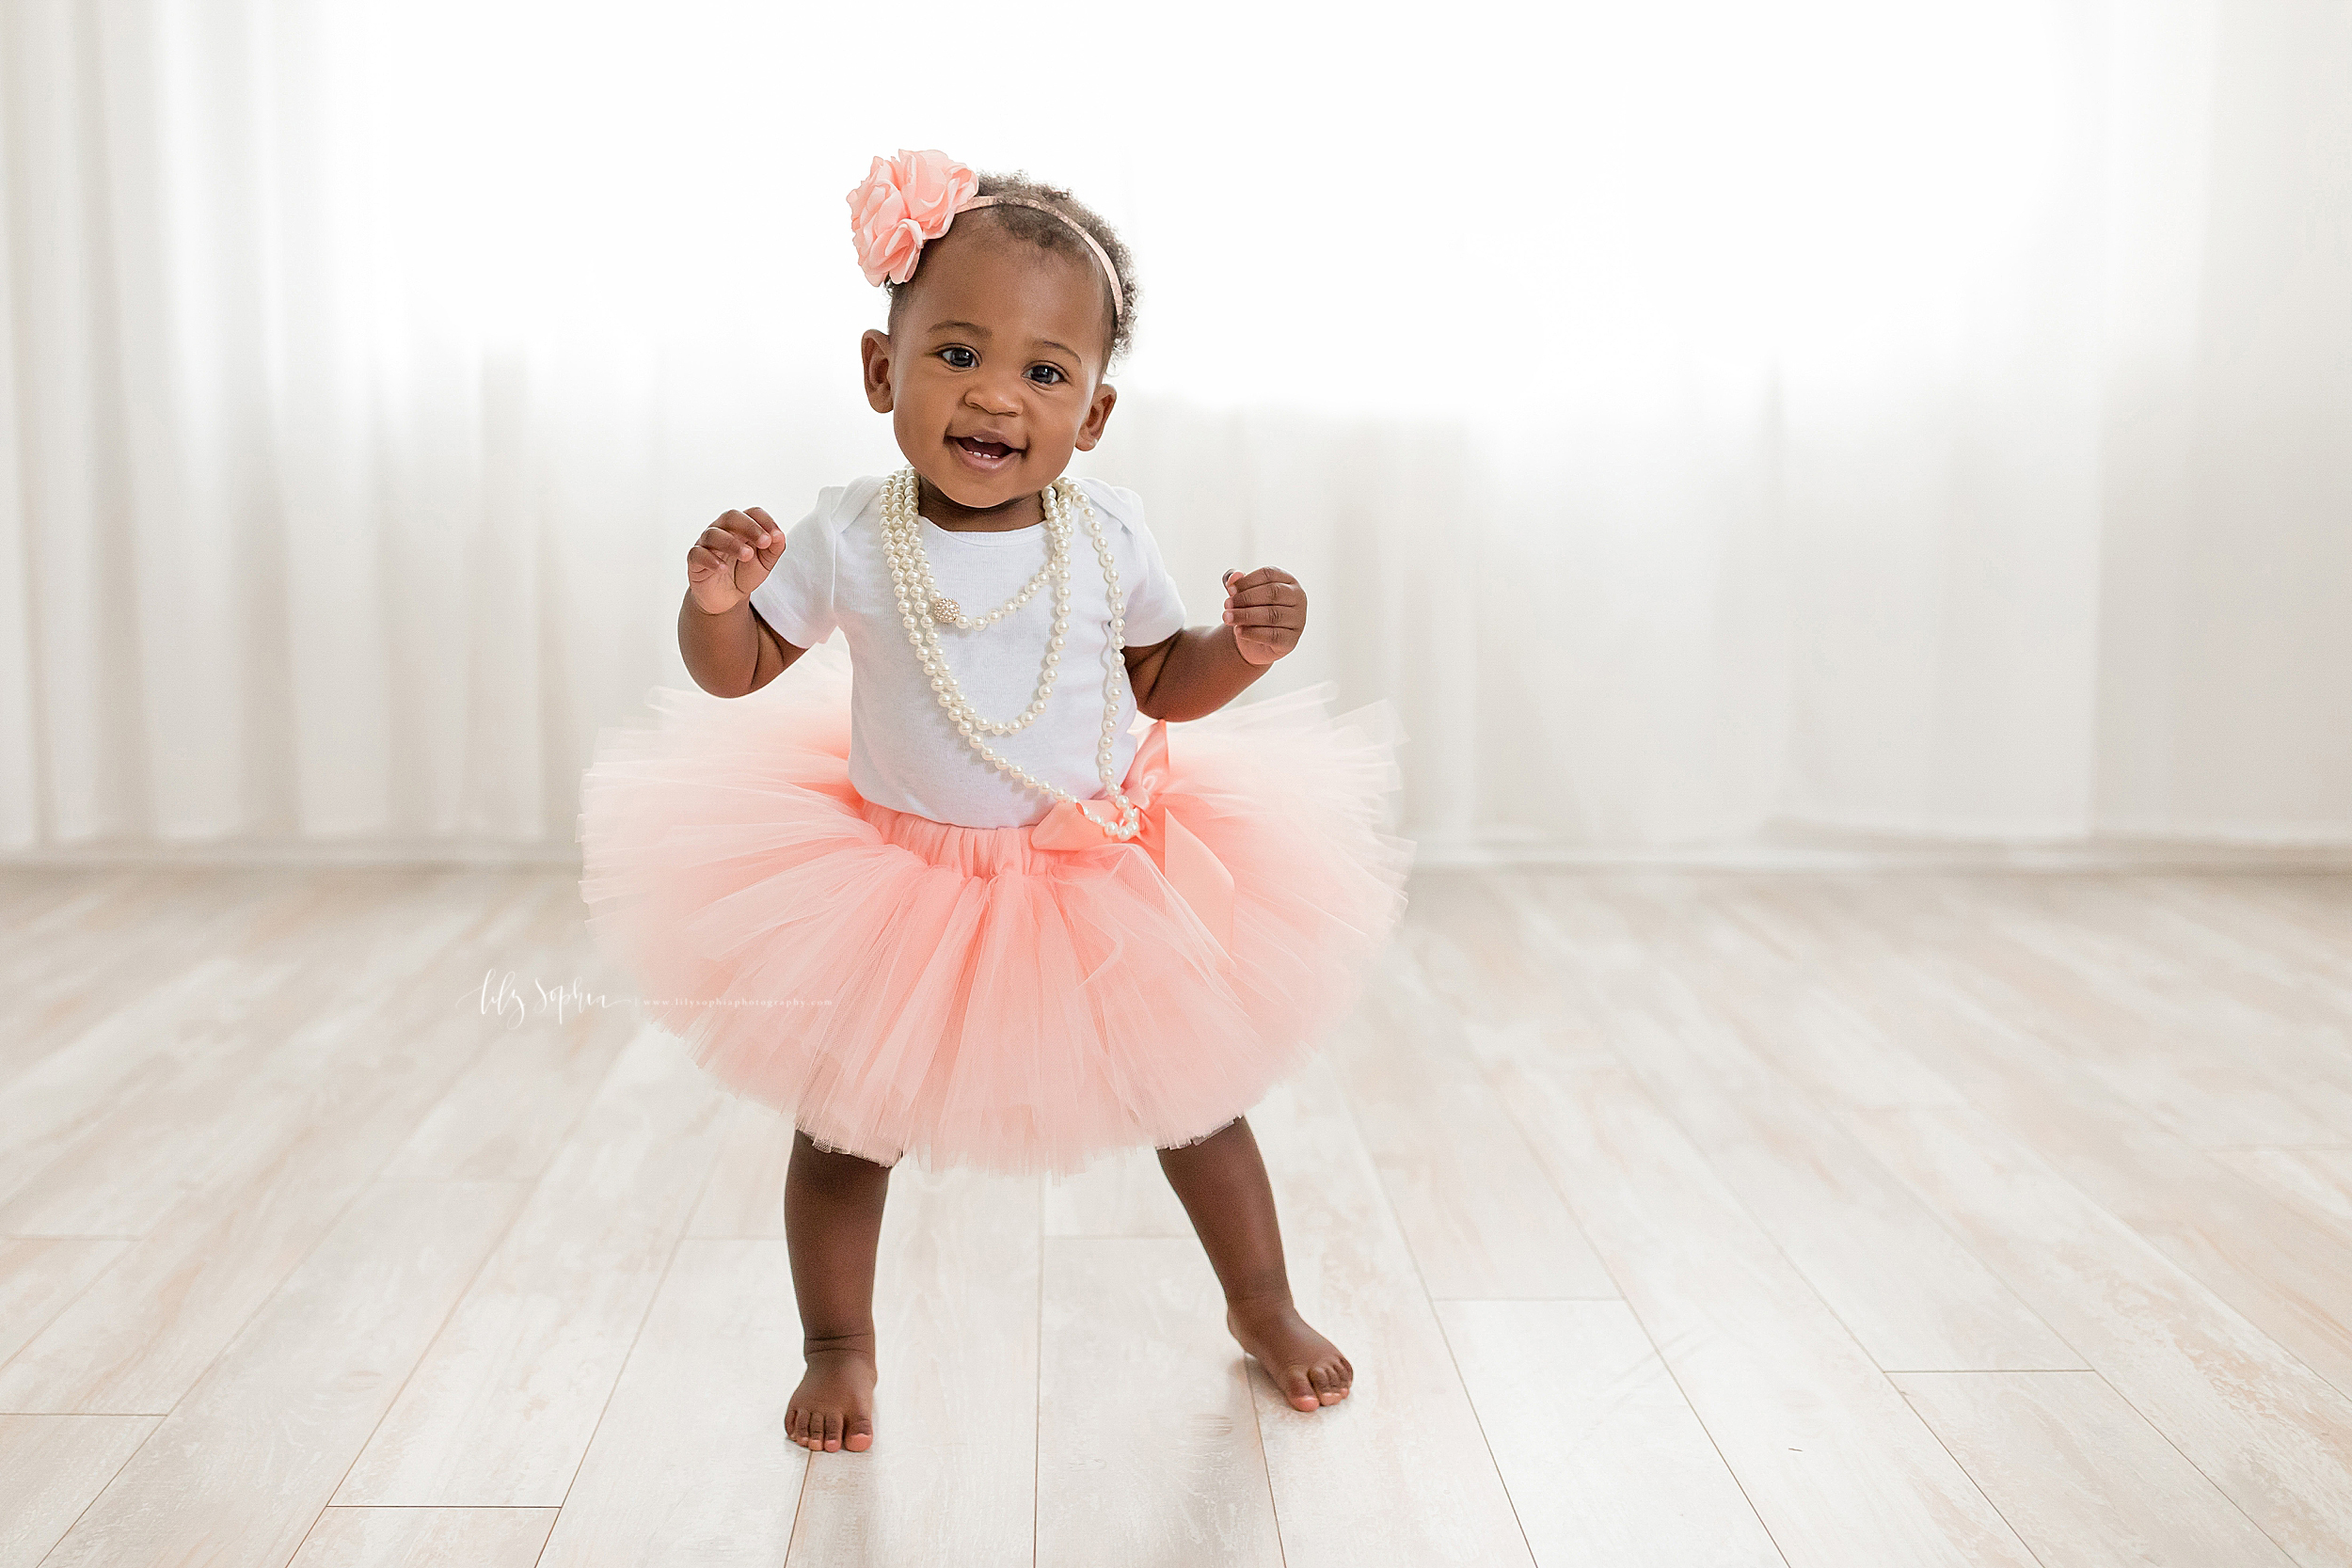 atlanta-smyrna-brookhaven-decatur-lily-sophia-photography-photographer-portraits-grant-park-intown-first-birthday-cake-smash-one-year-old-toddler-baby-girl_0014.jpg